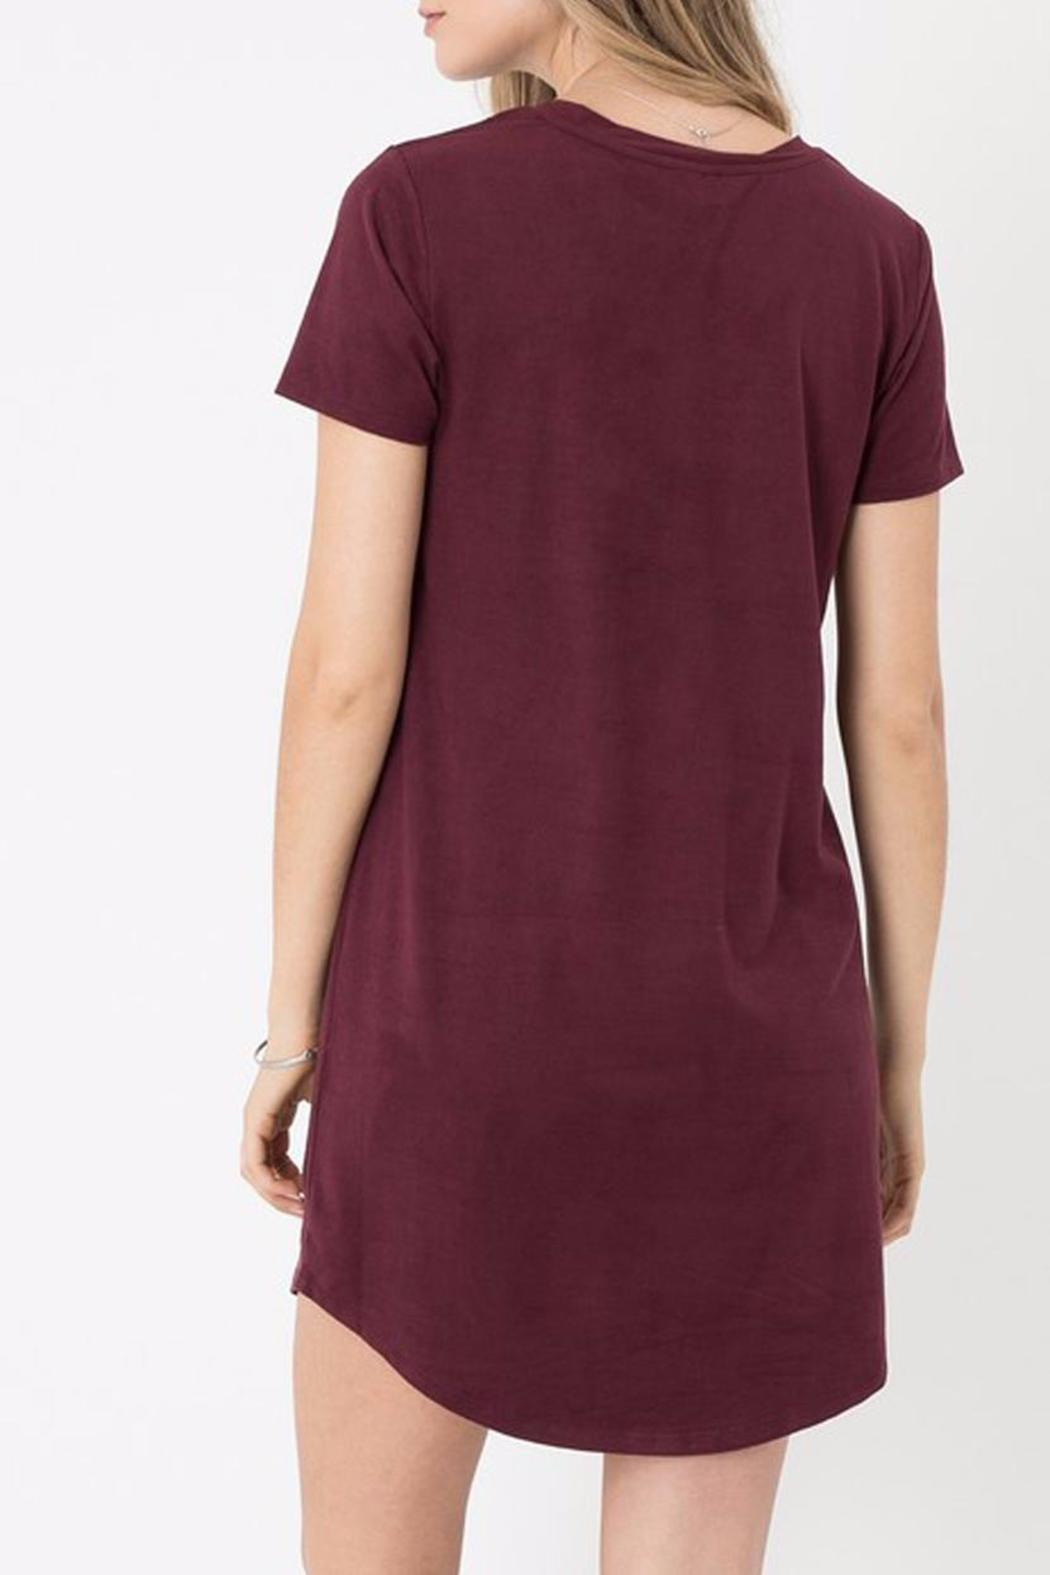 z supply Suede Dress - Side Cropped Image